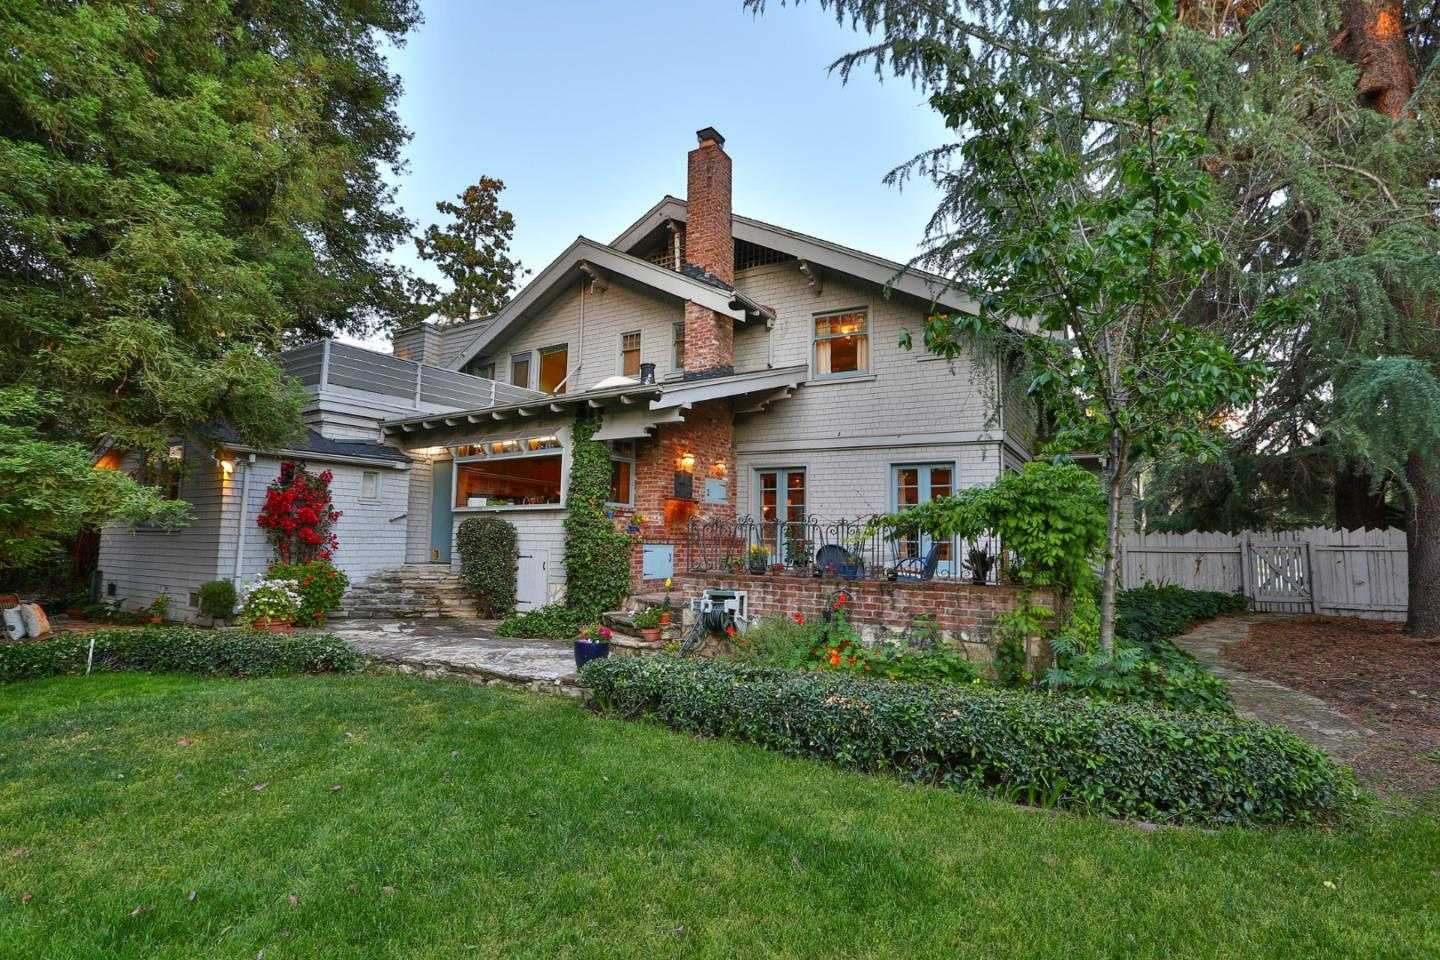 $2,248,800 - 6Br/4Ba -  for Sale in San Jose